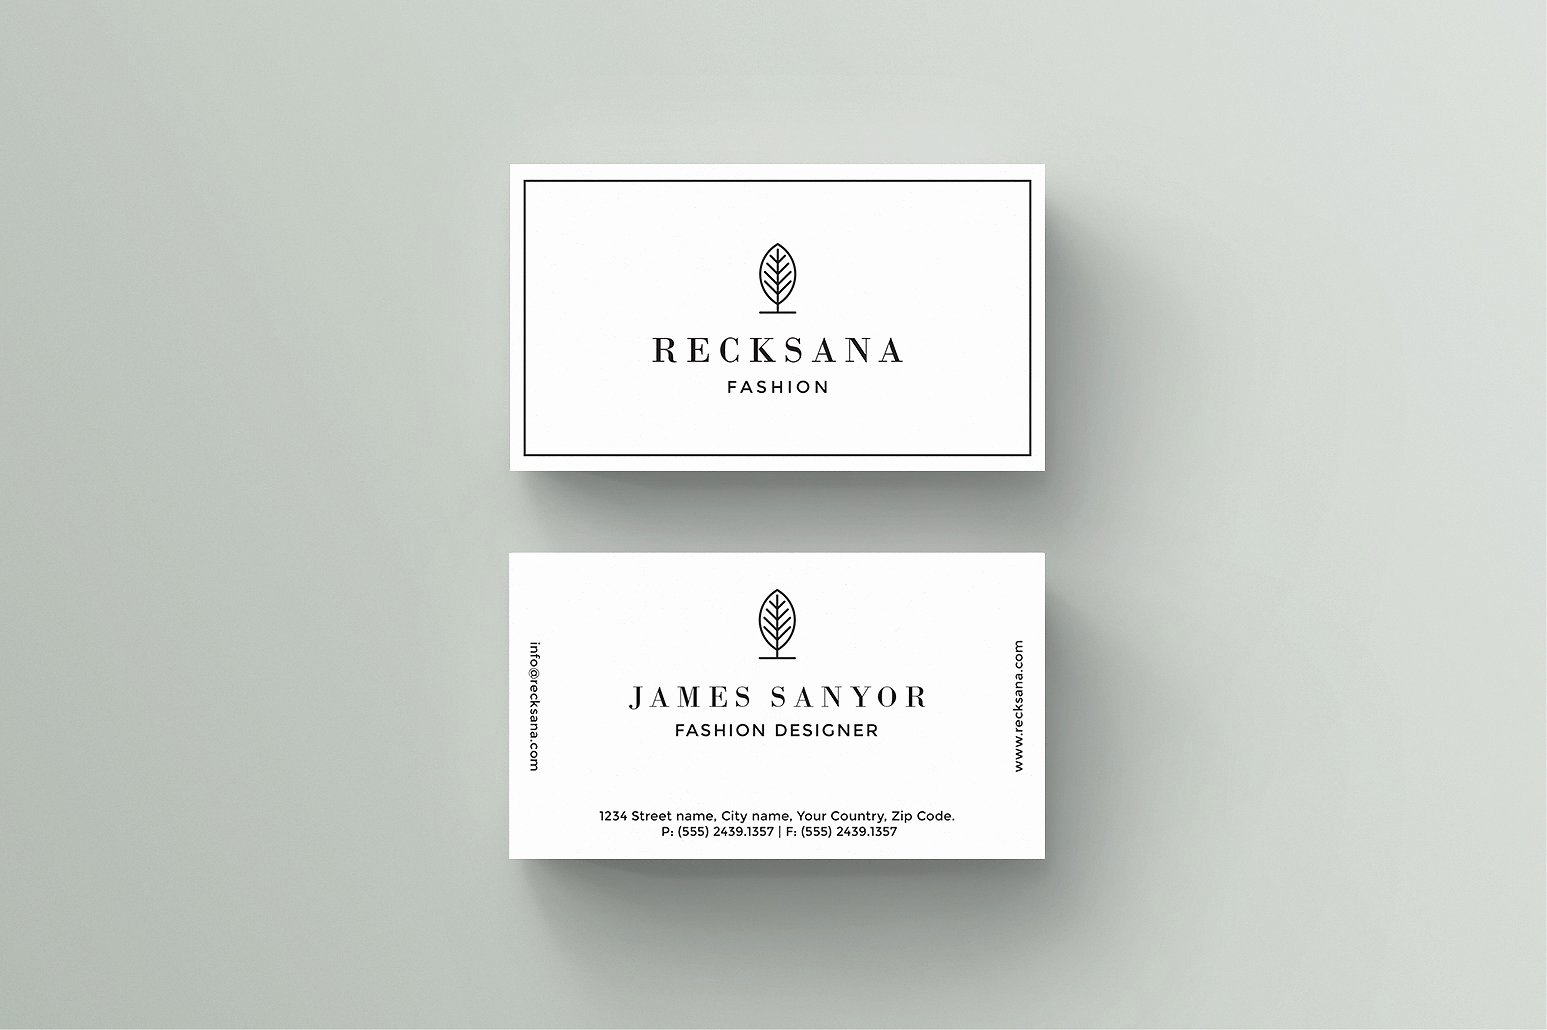 Wedding Name Card Template New Name Card Template Business Word Free Download Ai Wedding